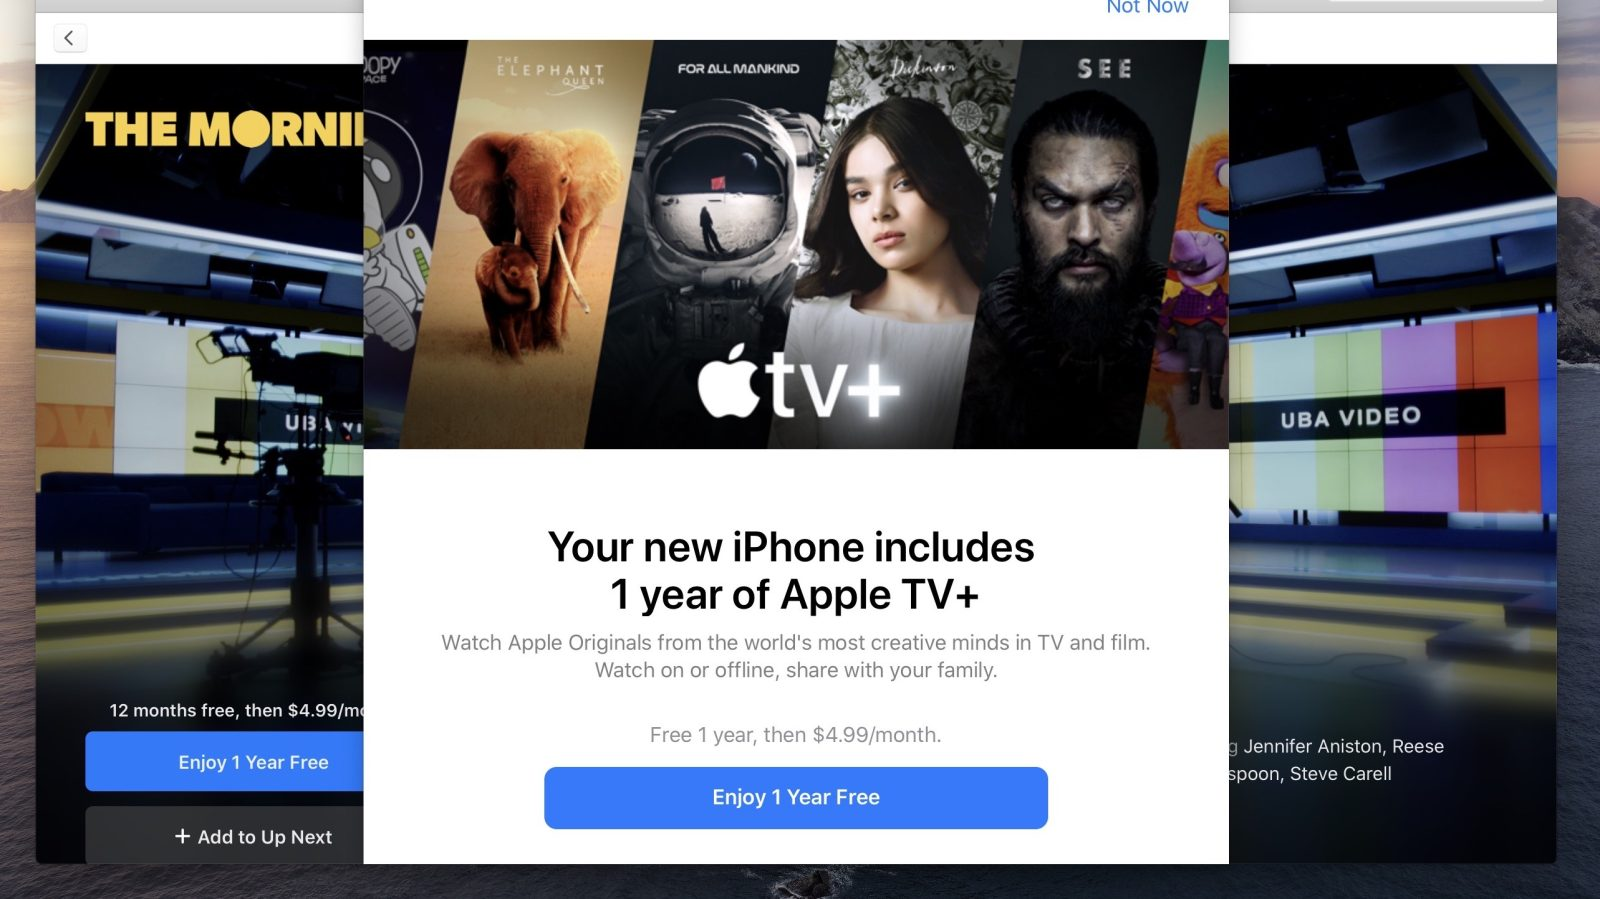 Here's how to get your free year of Apple TV+